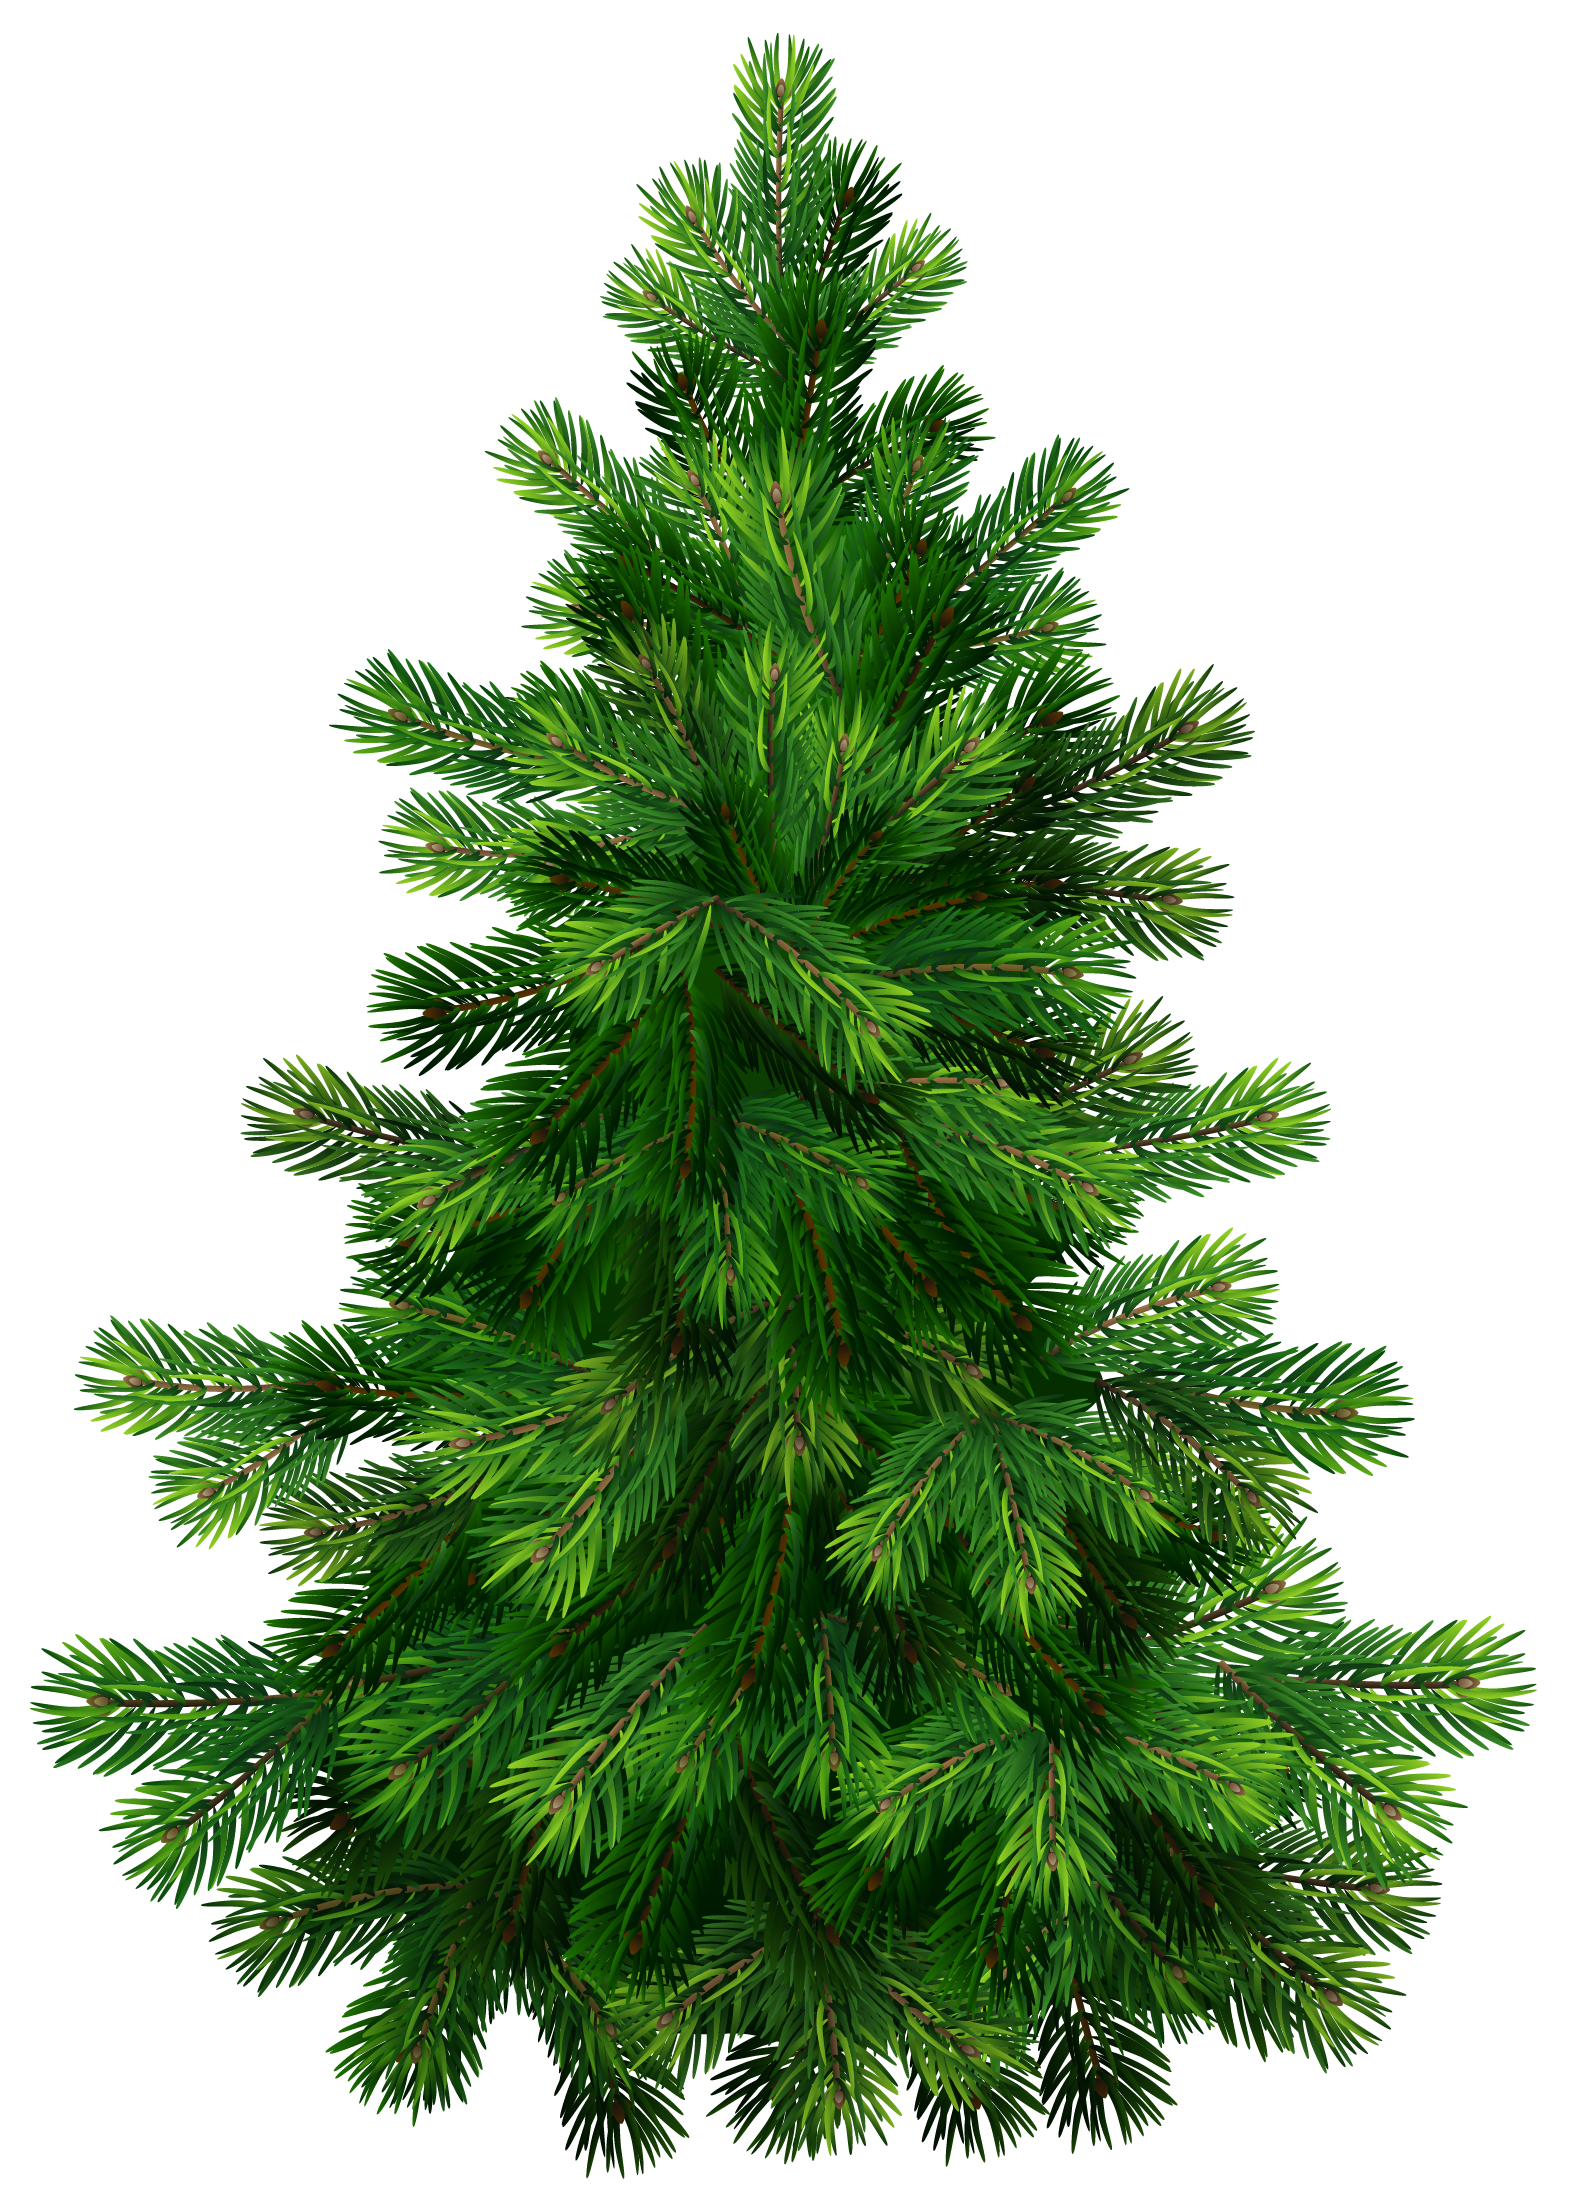 Pine trees png. Transparent tree clipart picture